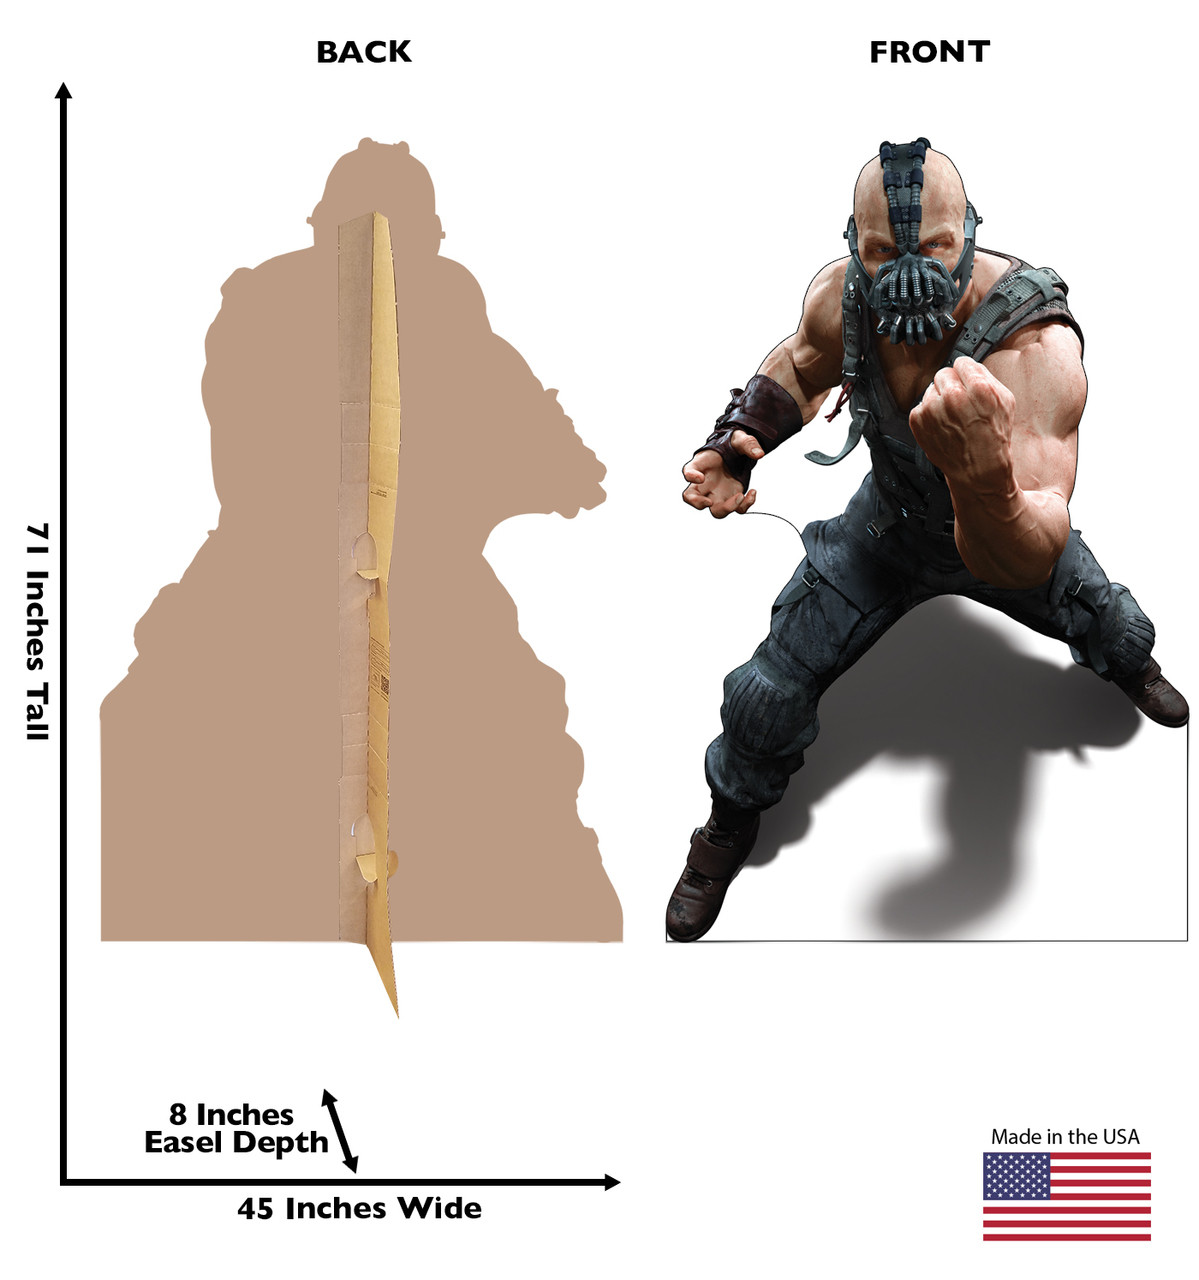 Bane - Cardboard Cutout Front and Back View